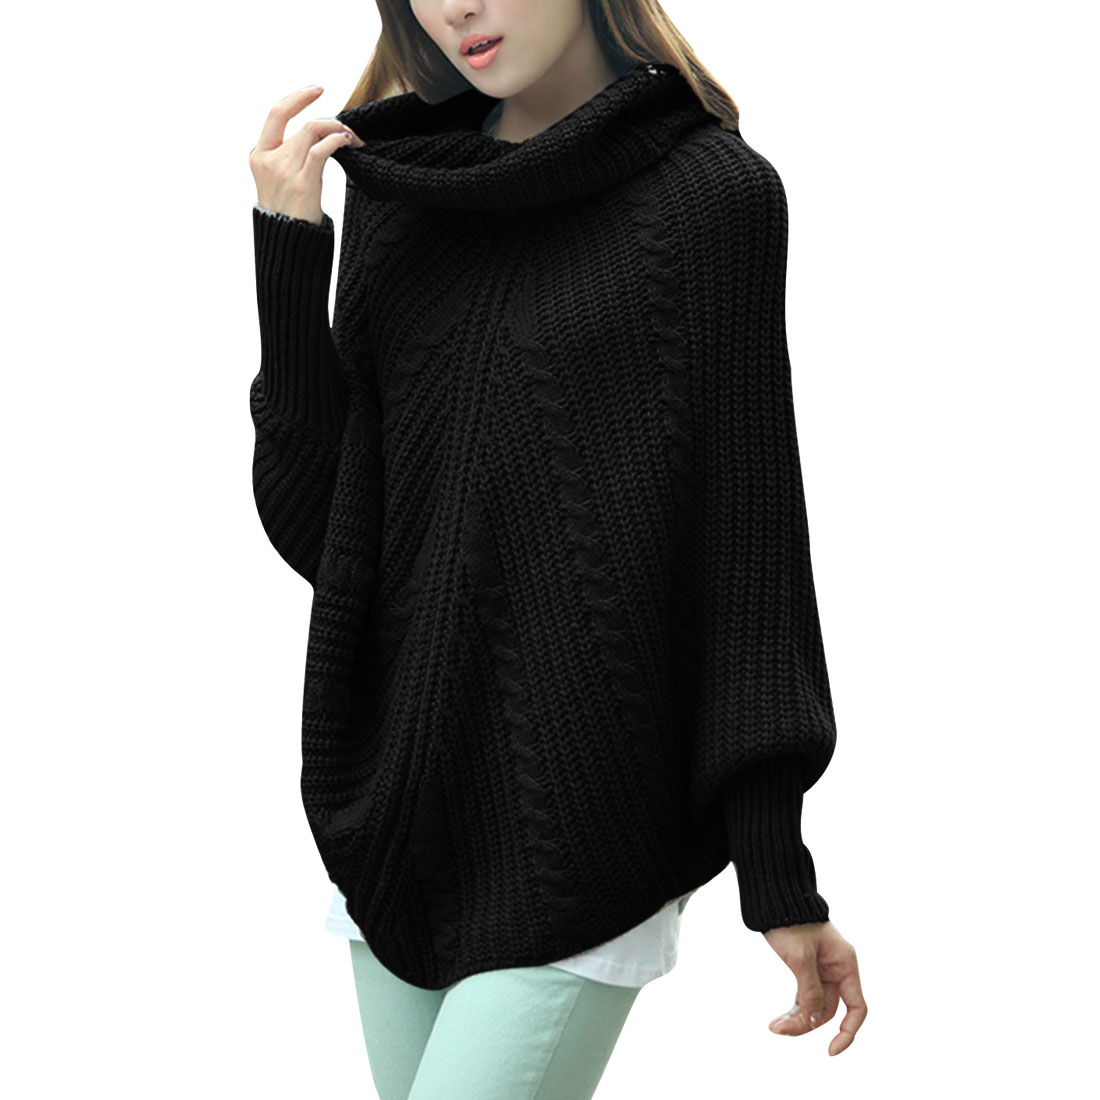 Ladies Twist Long Sleeved Pullover Black Knit Tunic Sweater S